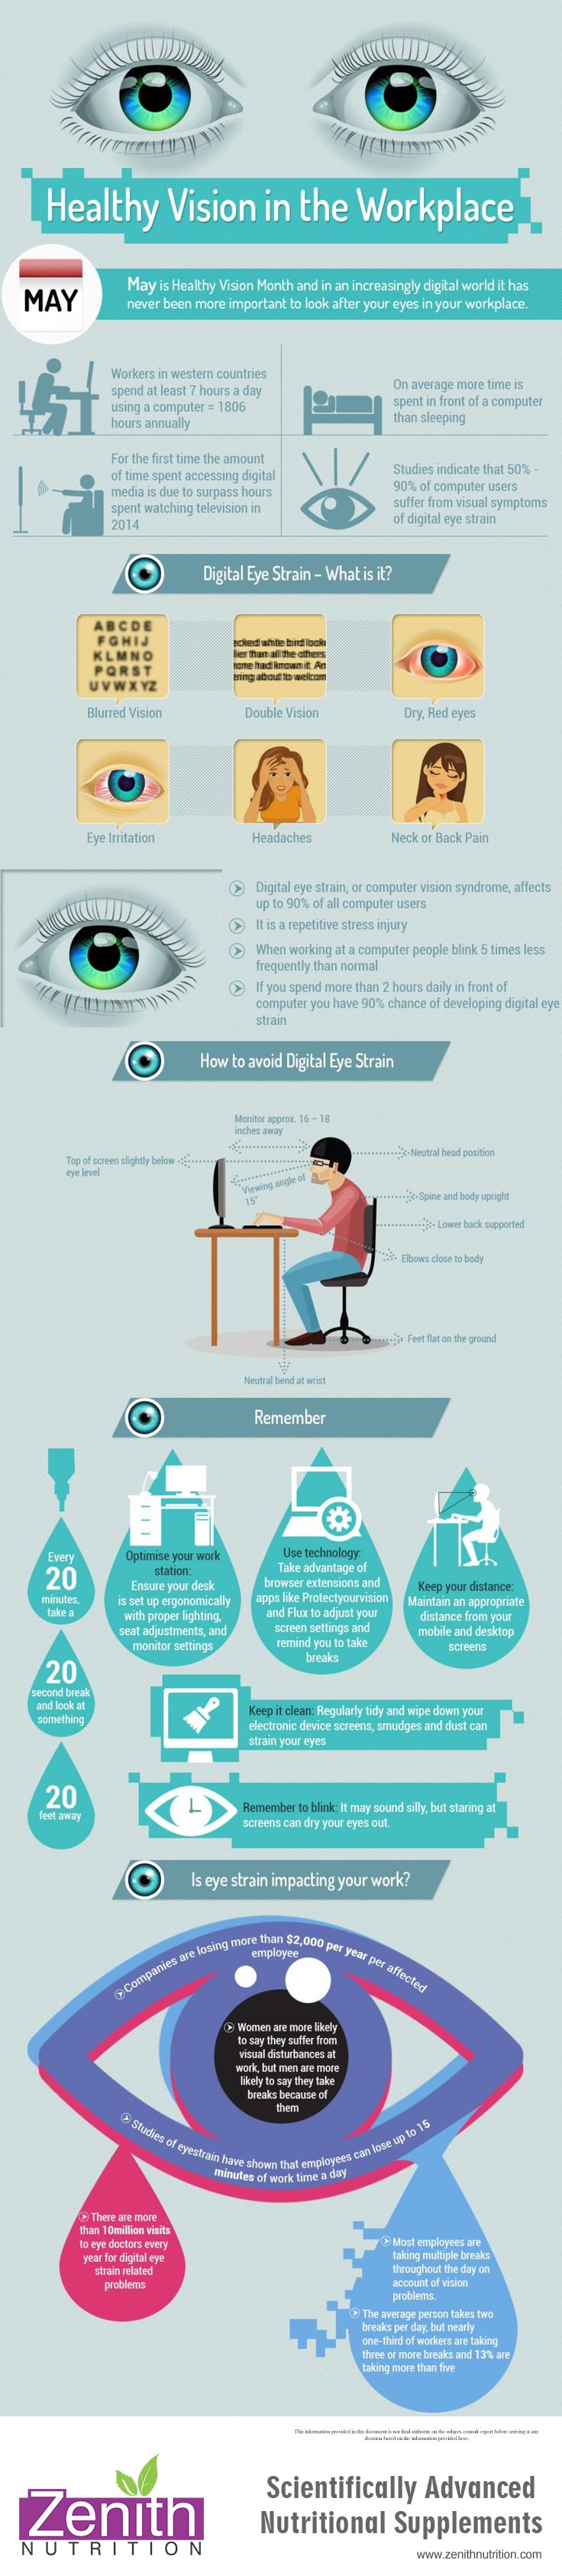 Healthy Vision In The Workplace. Digital Eye Strain What